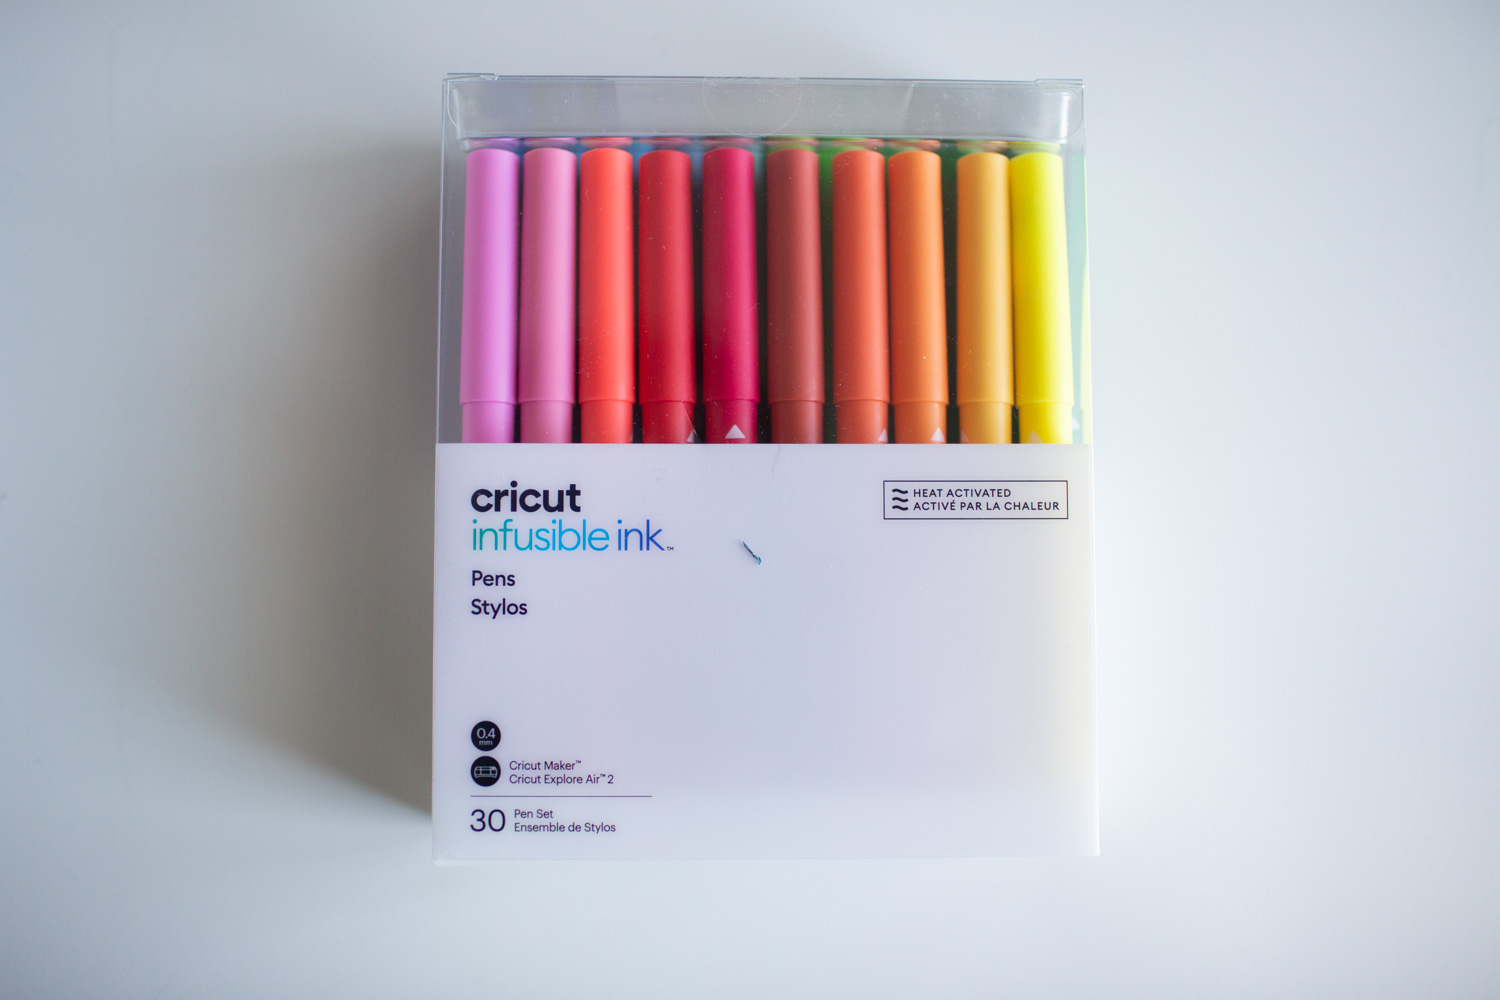 cricut infusible ink pen colors